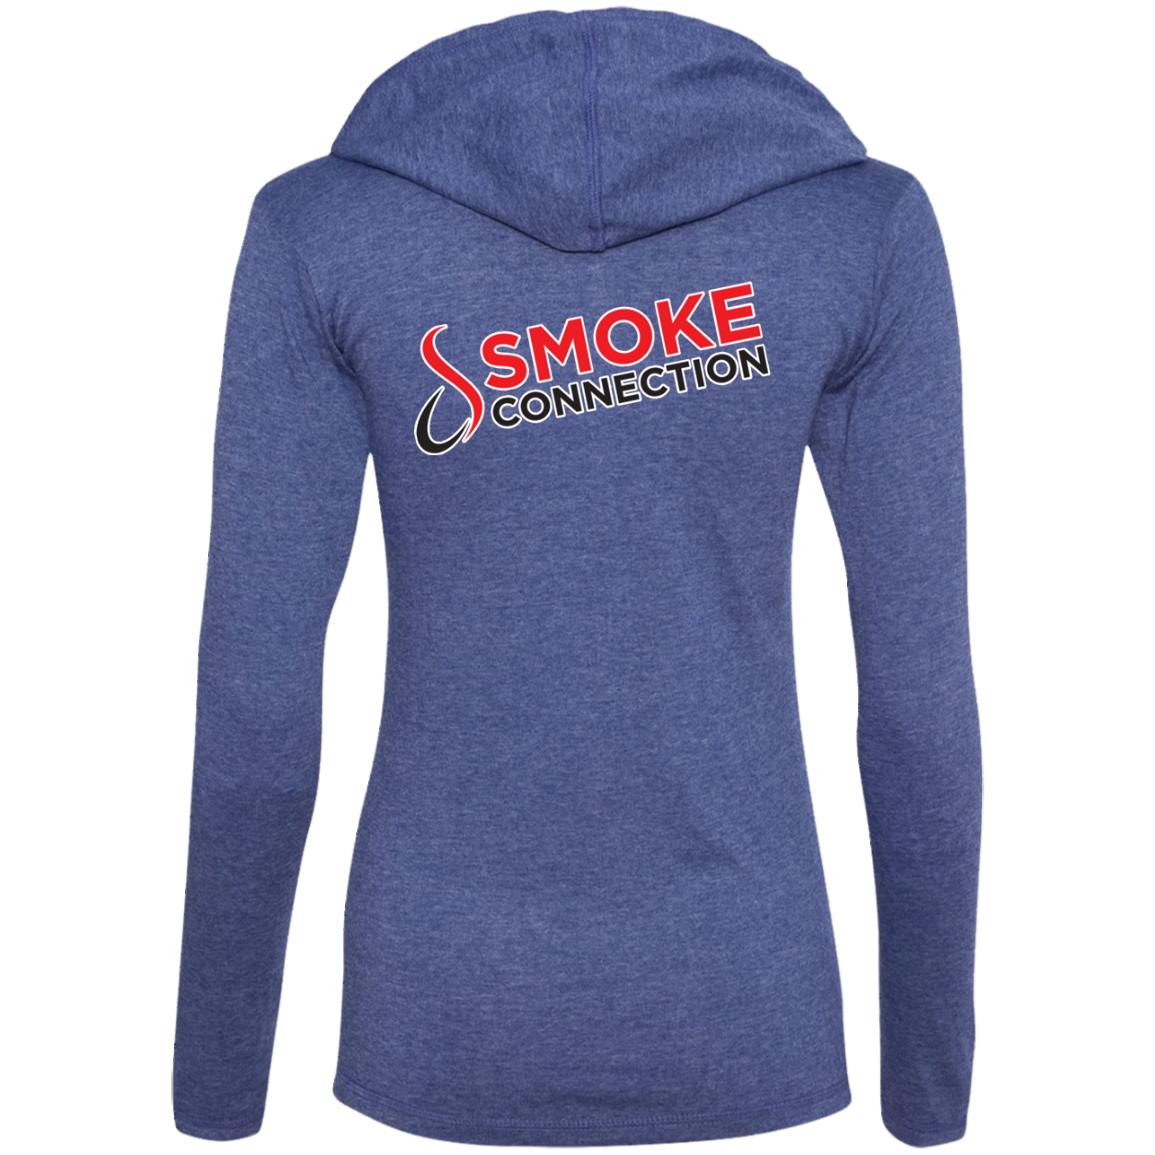 1LTHD5 Smoke Connection Ladies' LS T-Shirt Hoodie